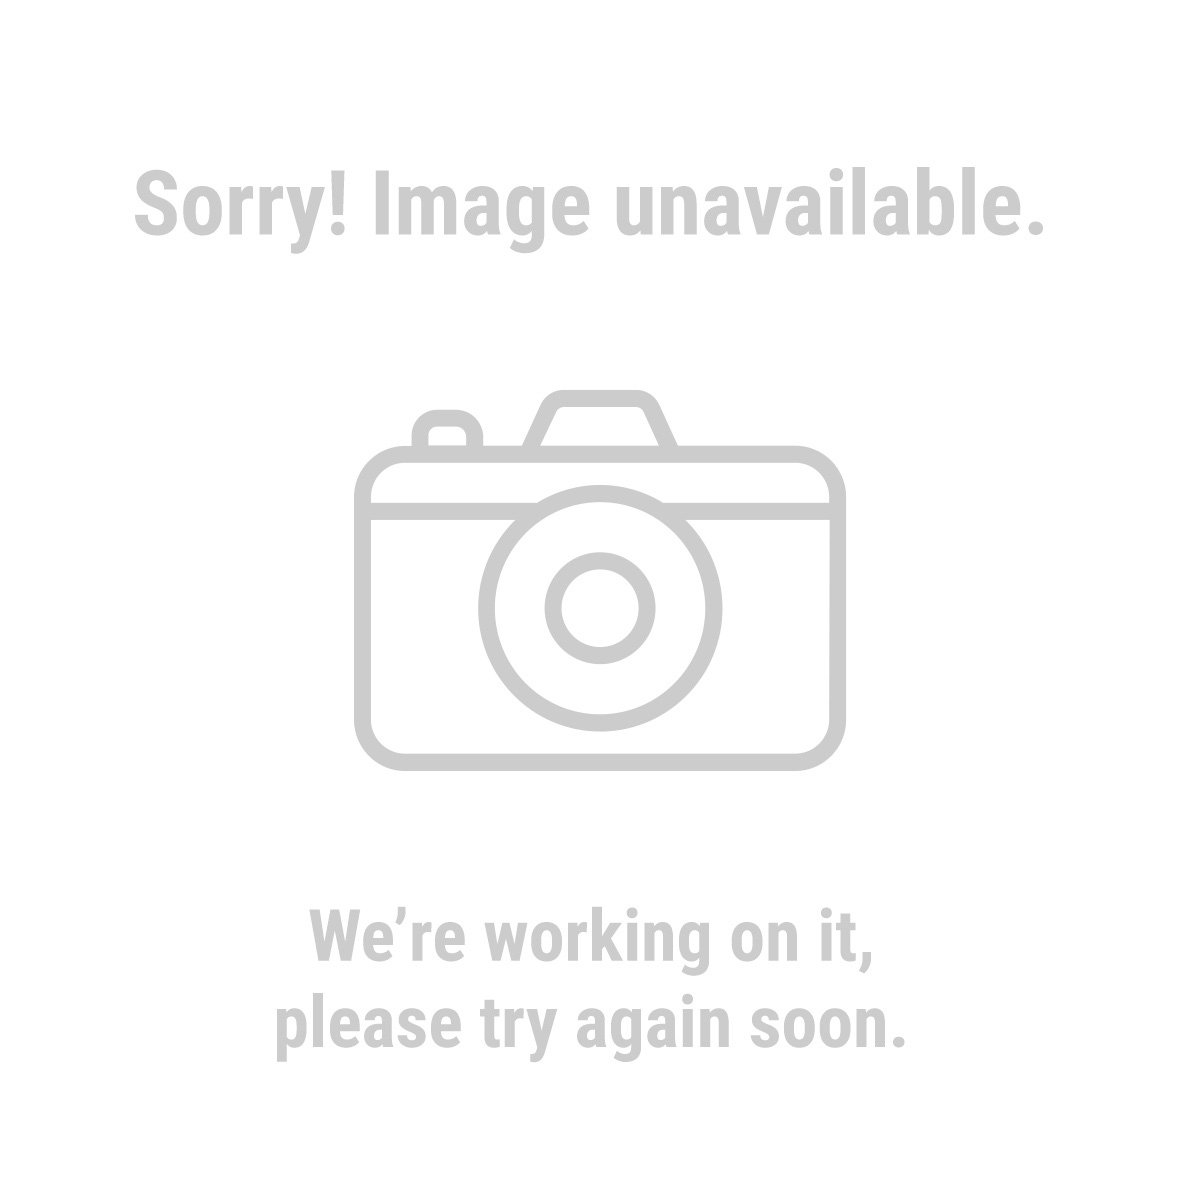 Chicago Electric Power Tools 36697 Feather Board with Angle Finder